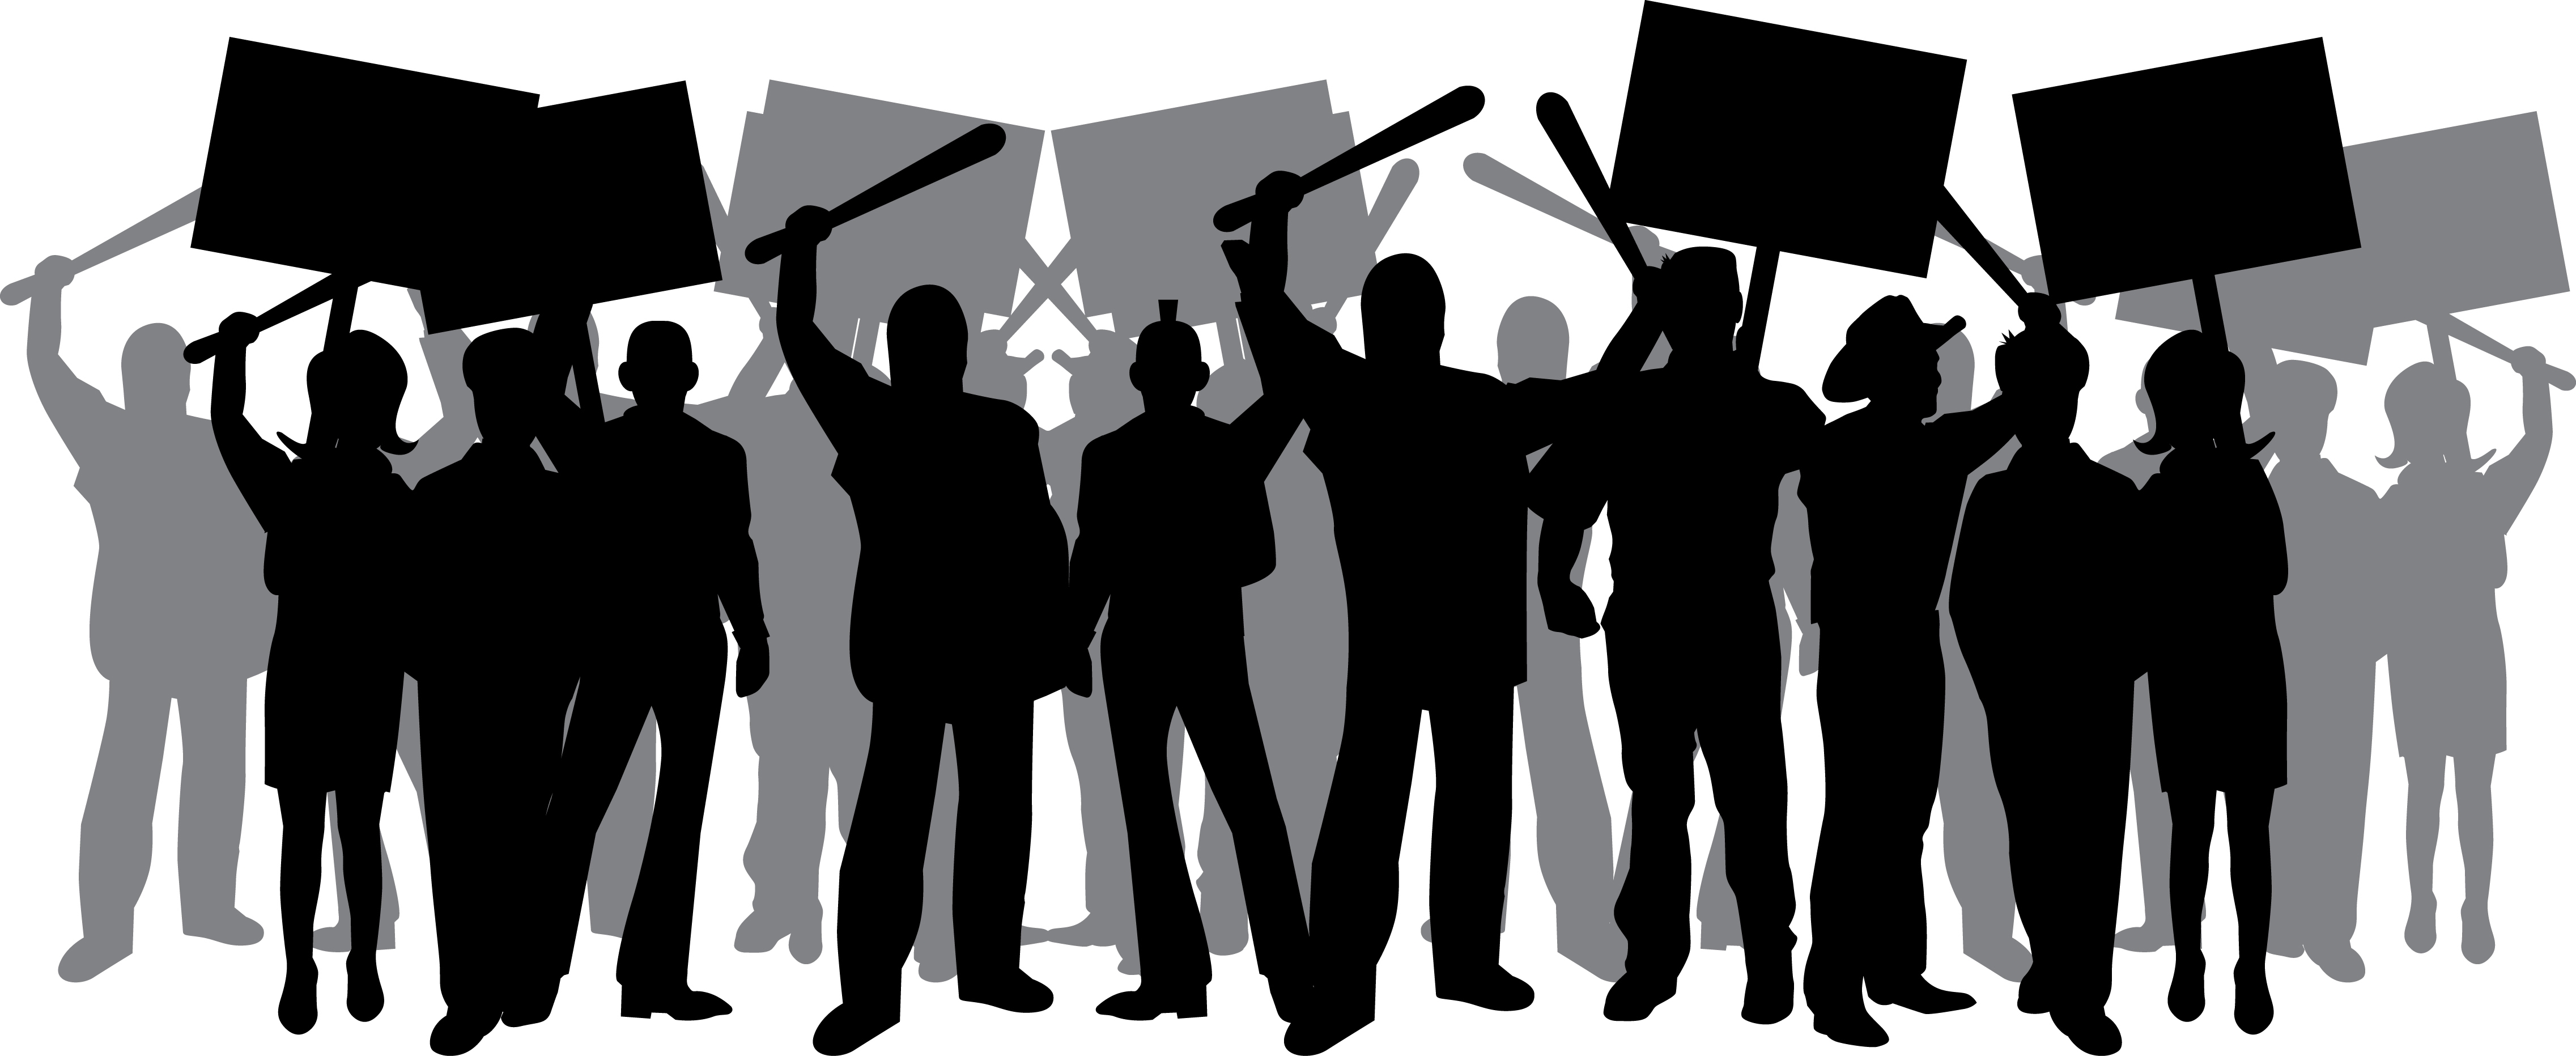 Protest clipart. Best of gallery digital